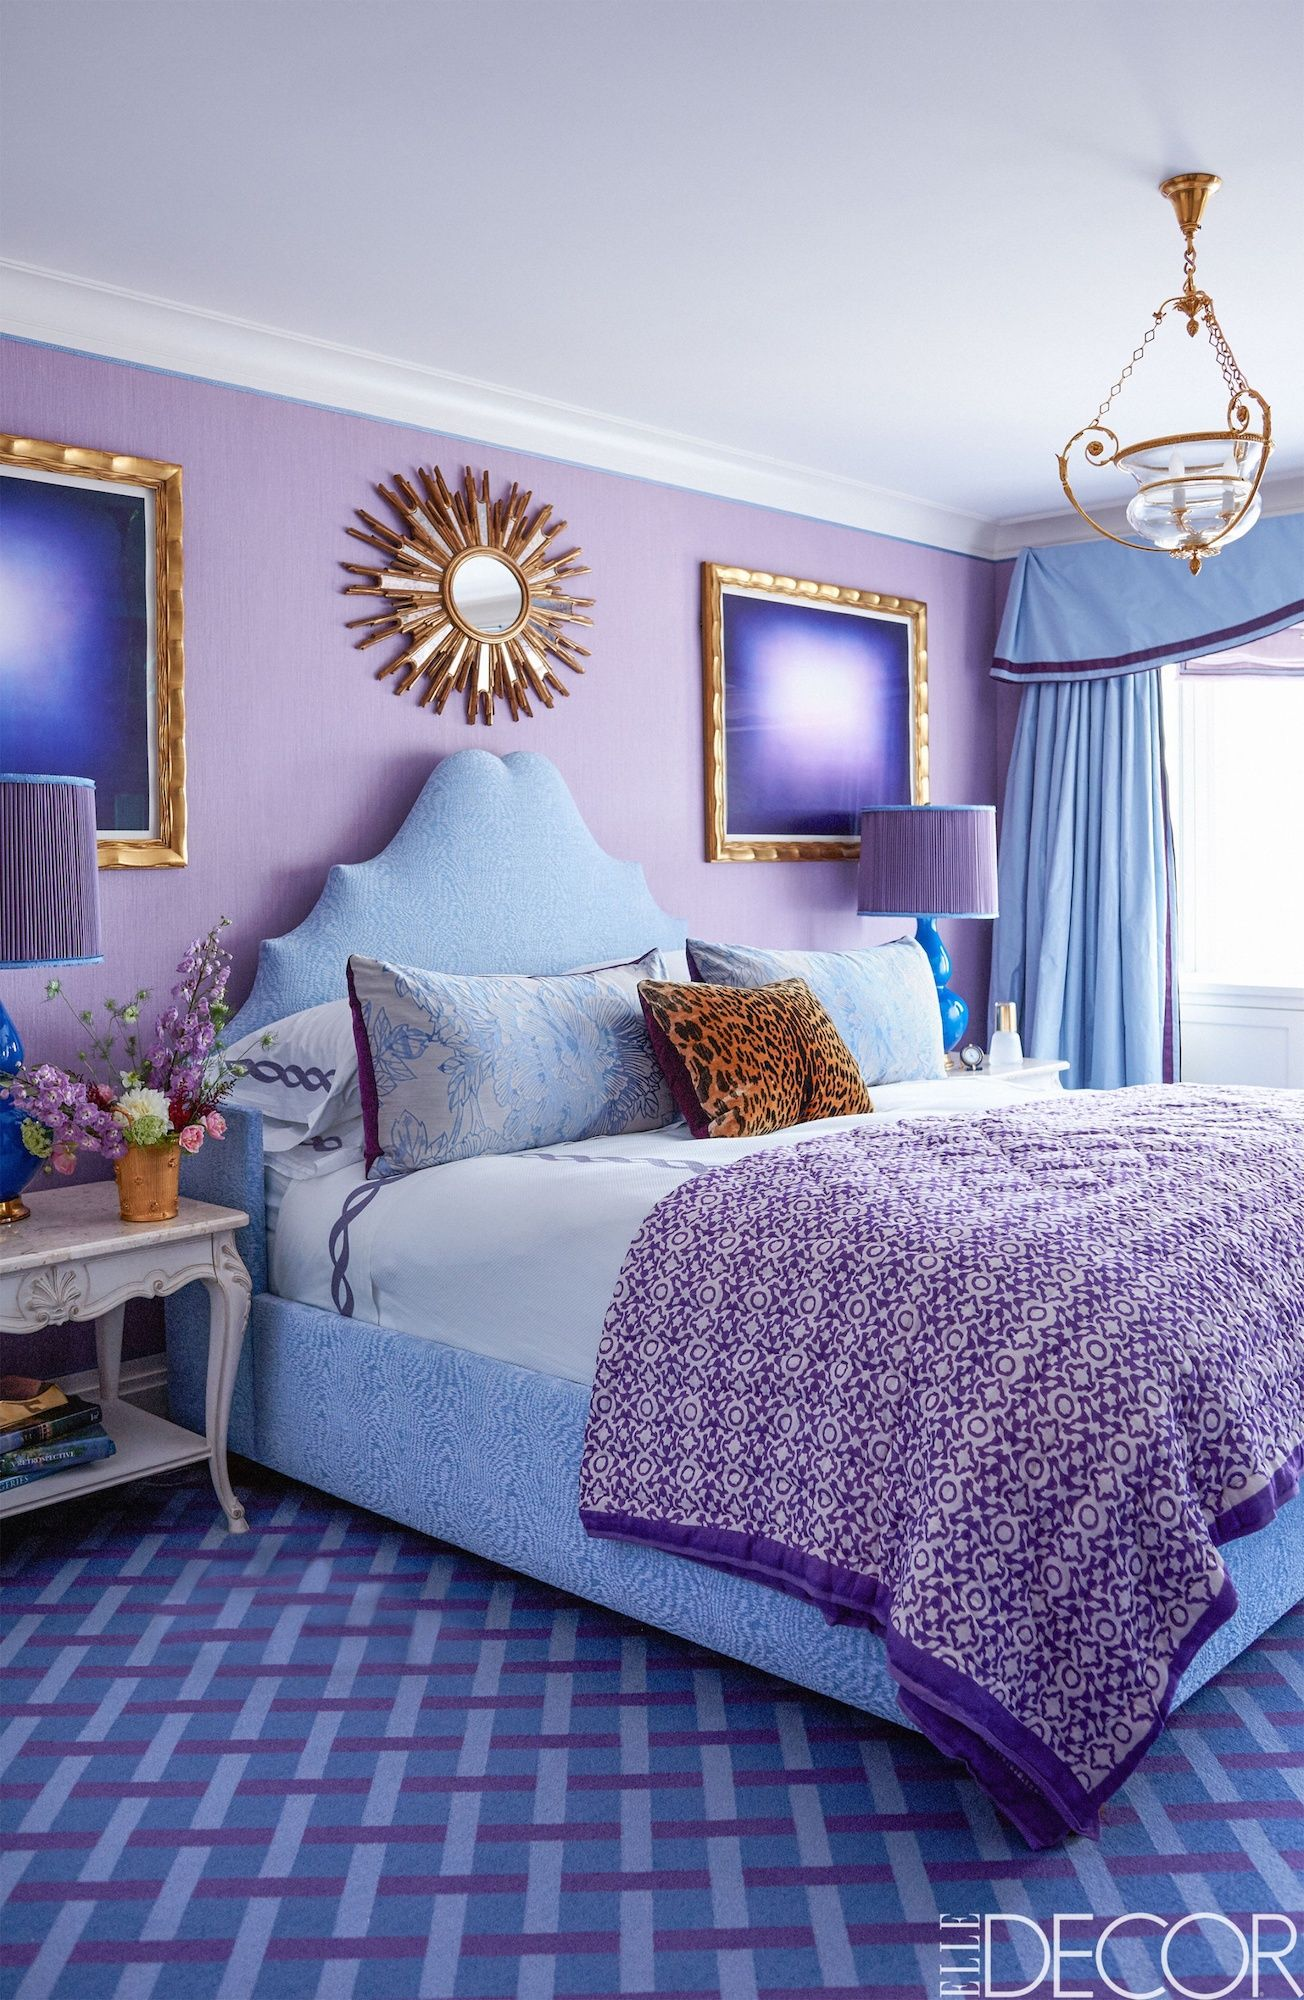 Paint Your Bedroom This Pretty Shade for a Tranquil Vibe ...